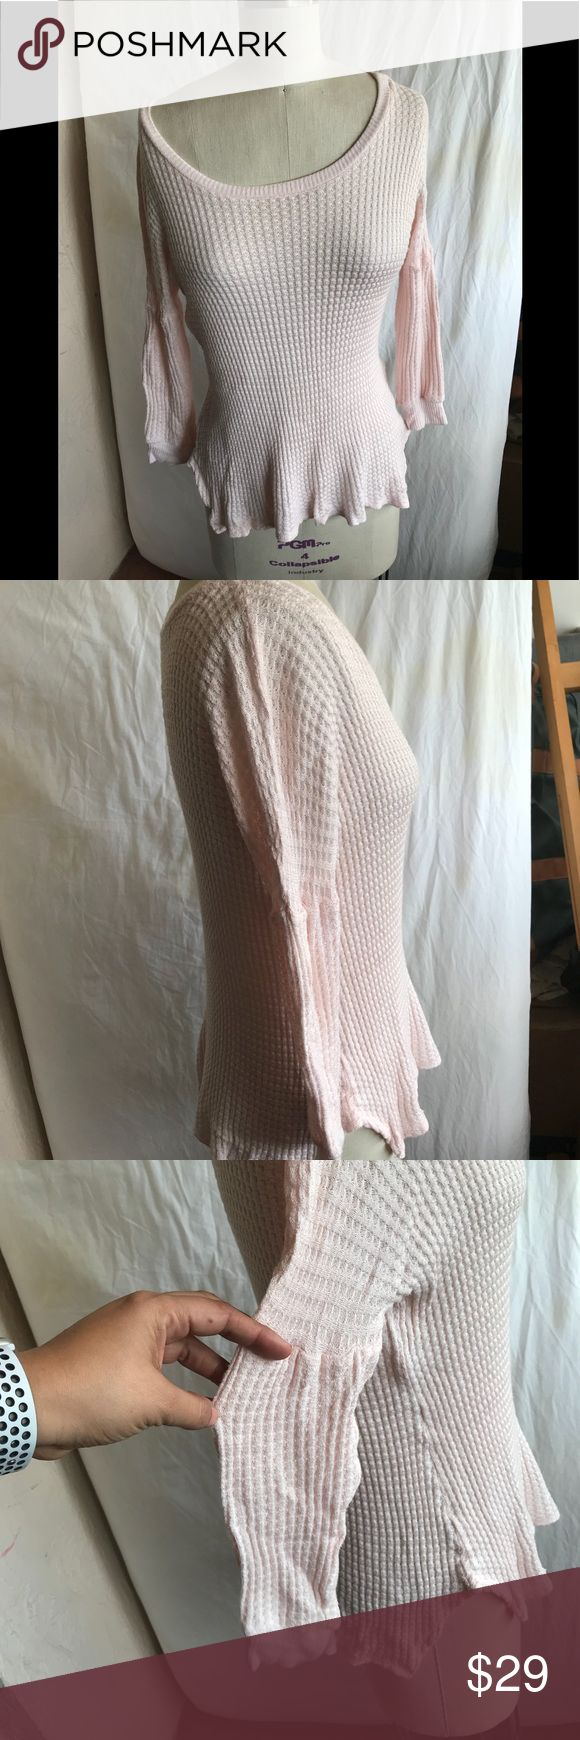 Velvet Graham Spencer pink waffle knit top new XS Suuuuper soft Nice bubbled sleeves detail Velvet by Graham & Spencer Tops